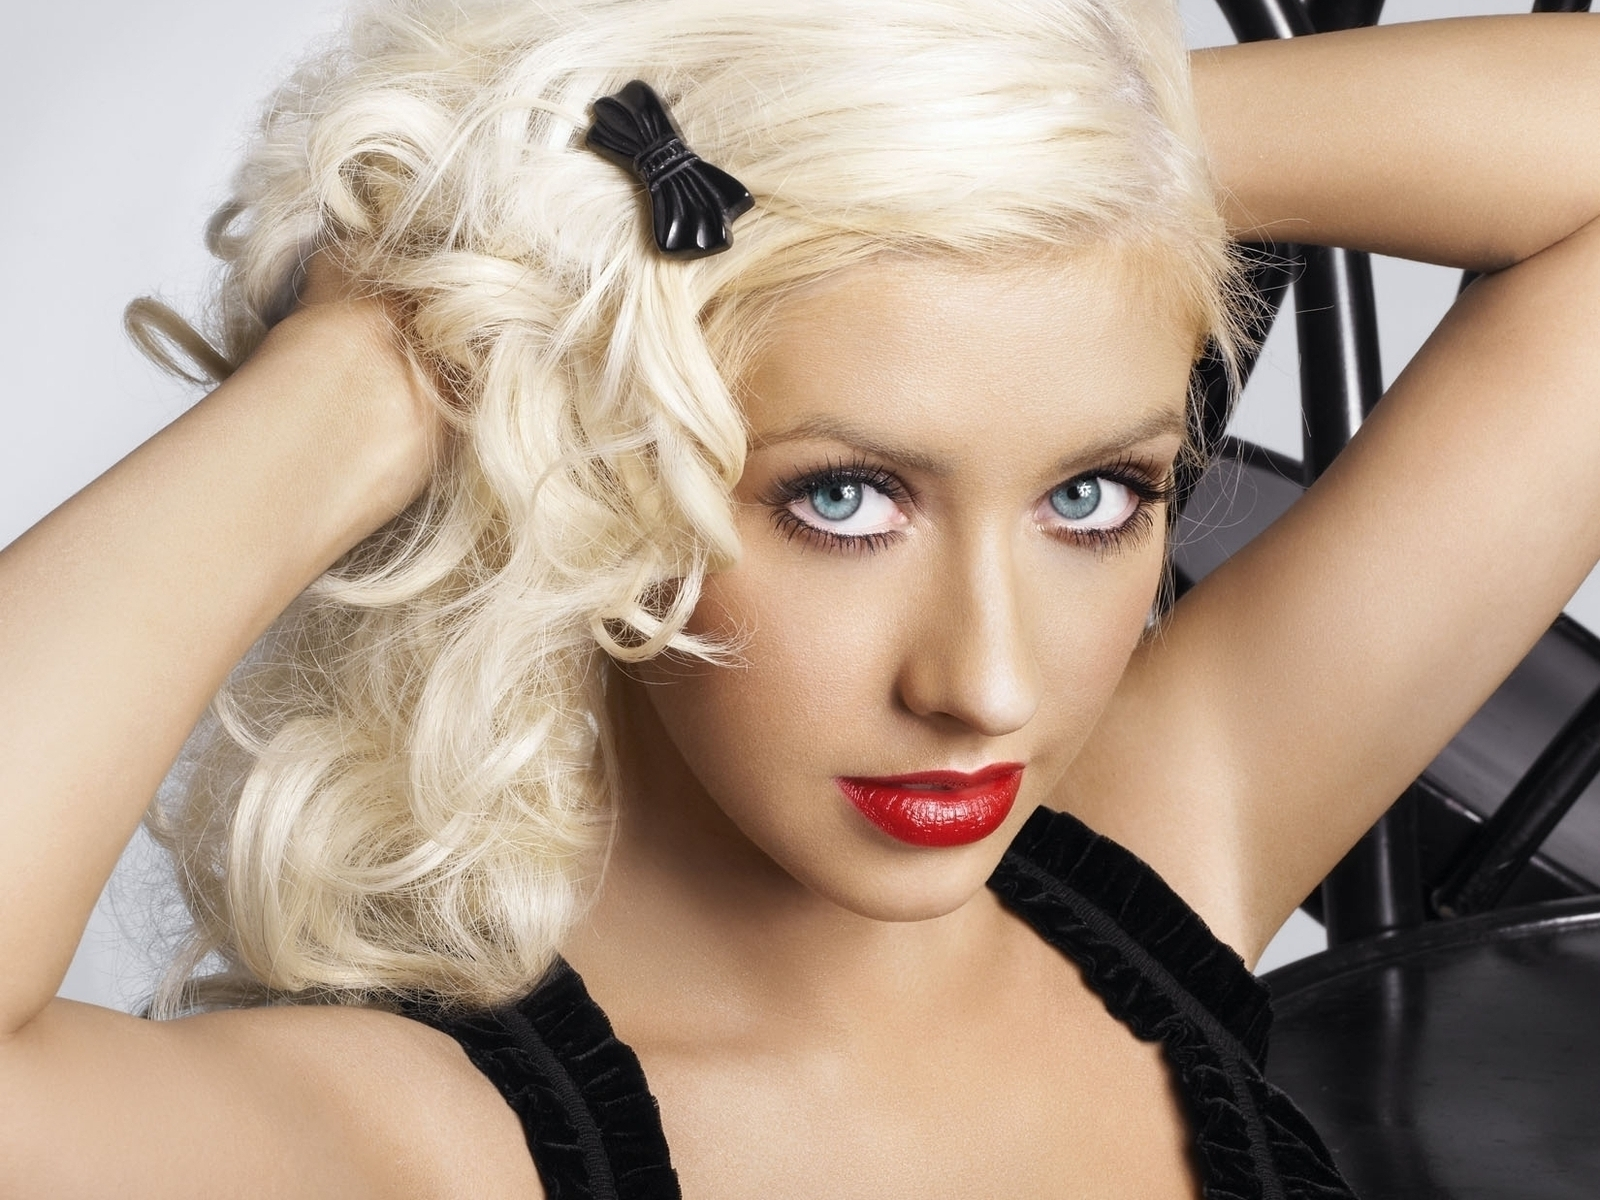 christina aguilera celebrity computer wallpaper 59849